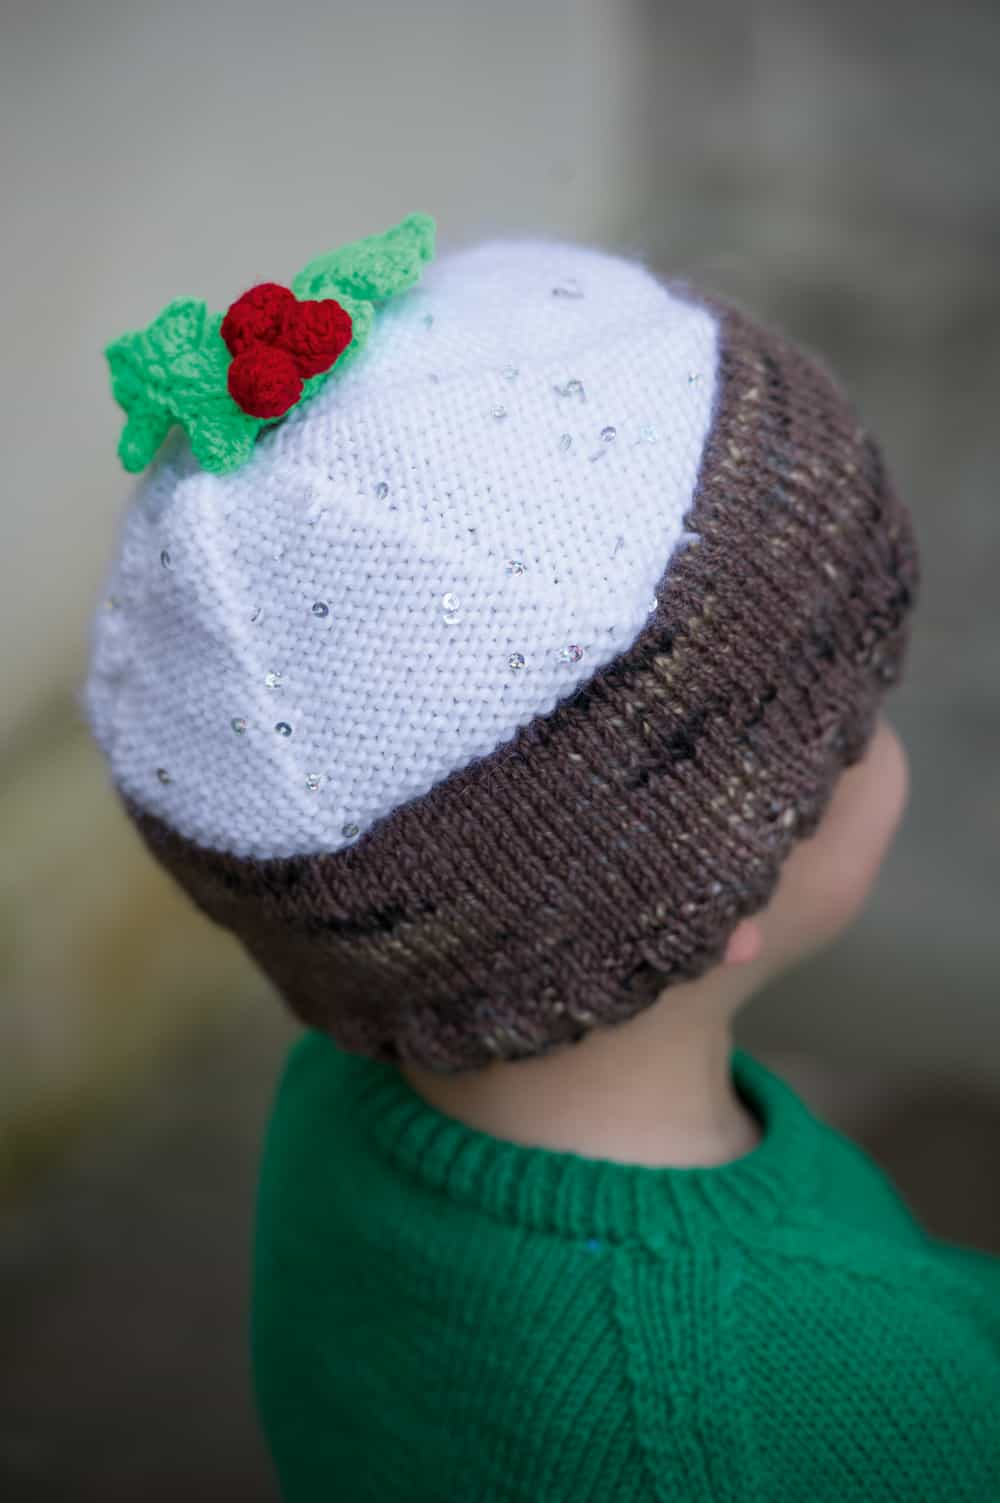 Christmas pudding knitted hat